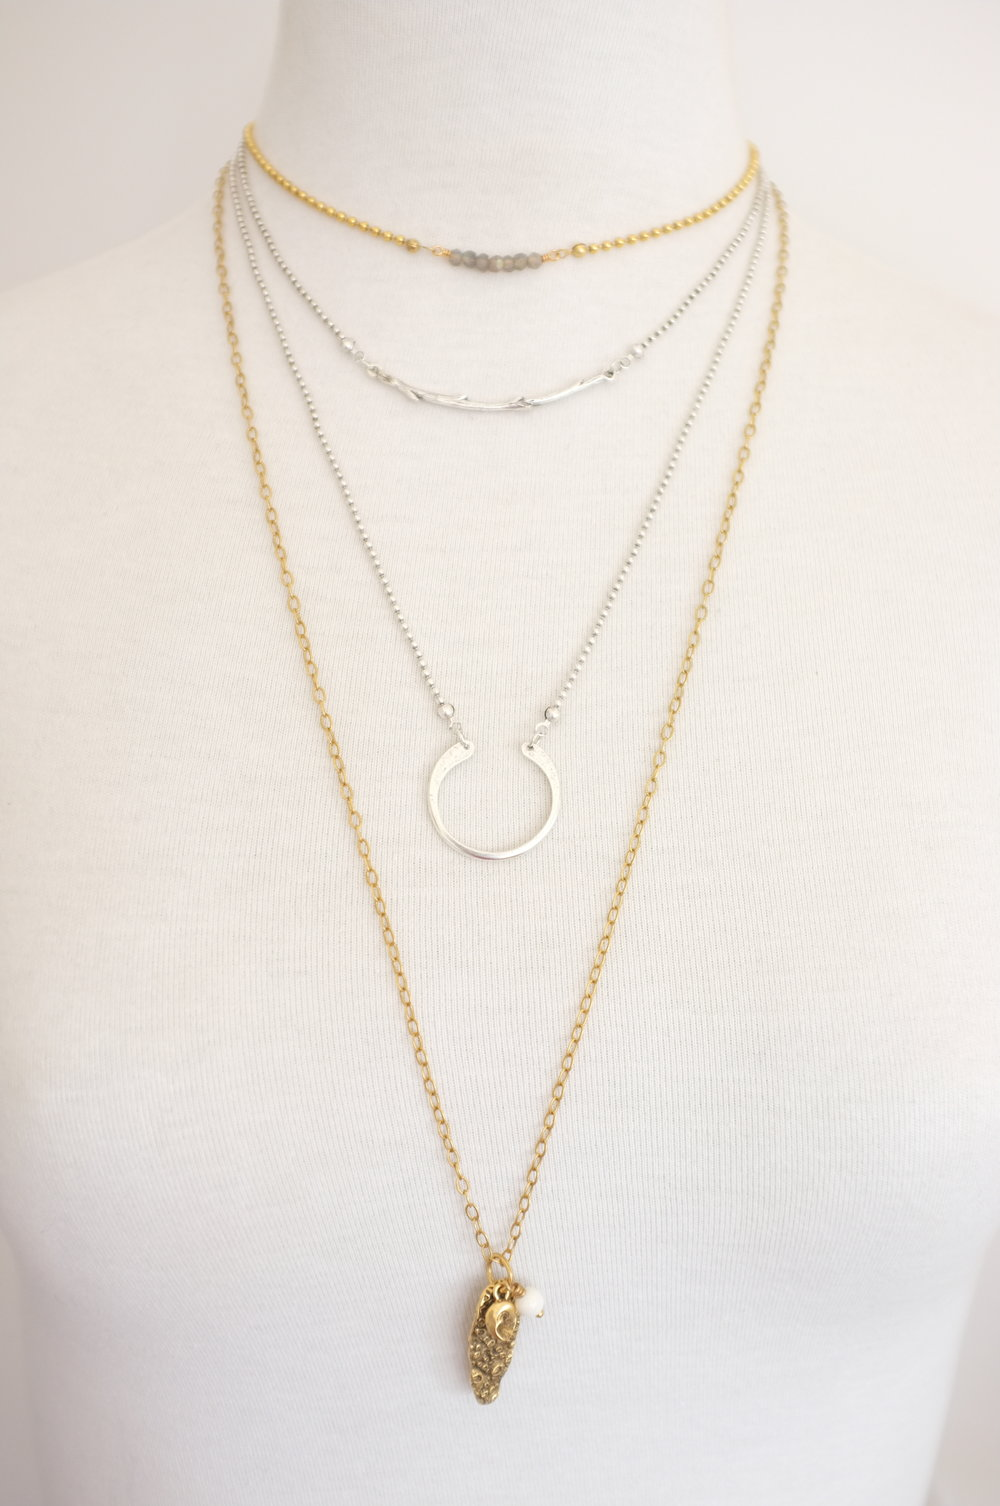 Necklace length options - Extra short 15 inchShort 16 inchMid 21 inchLong 30 inch